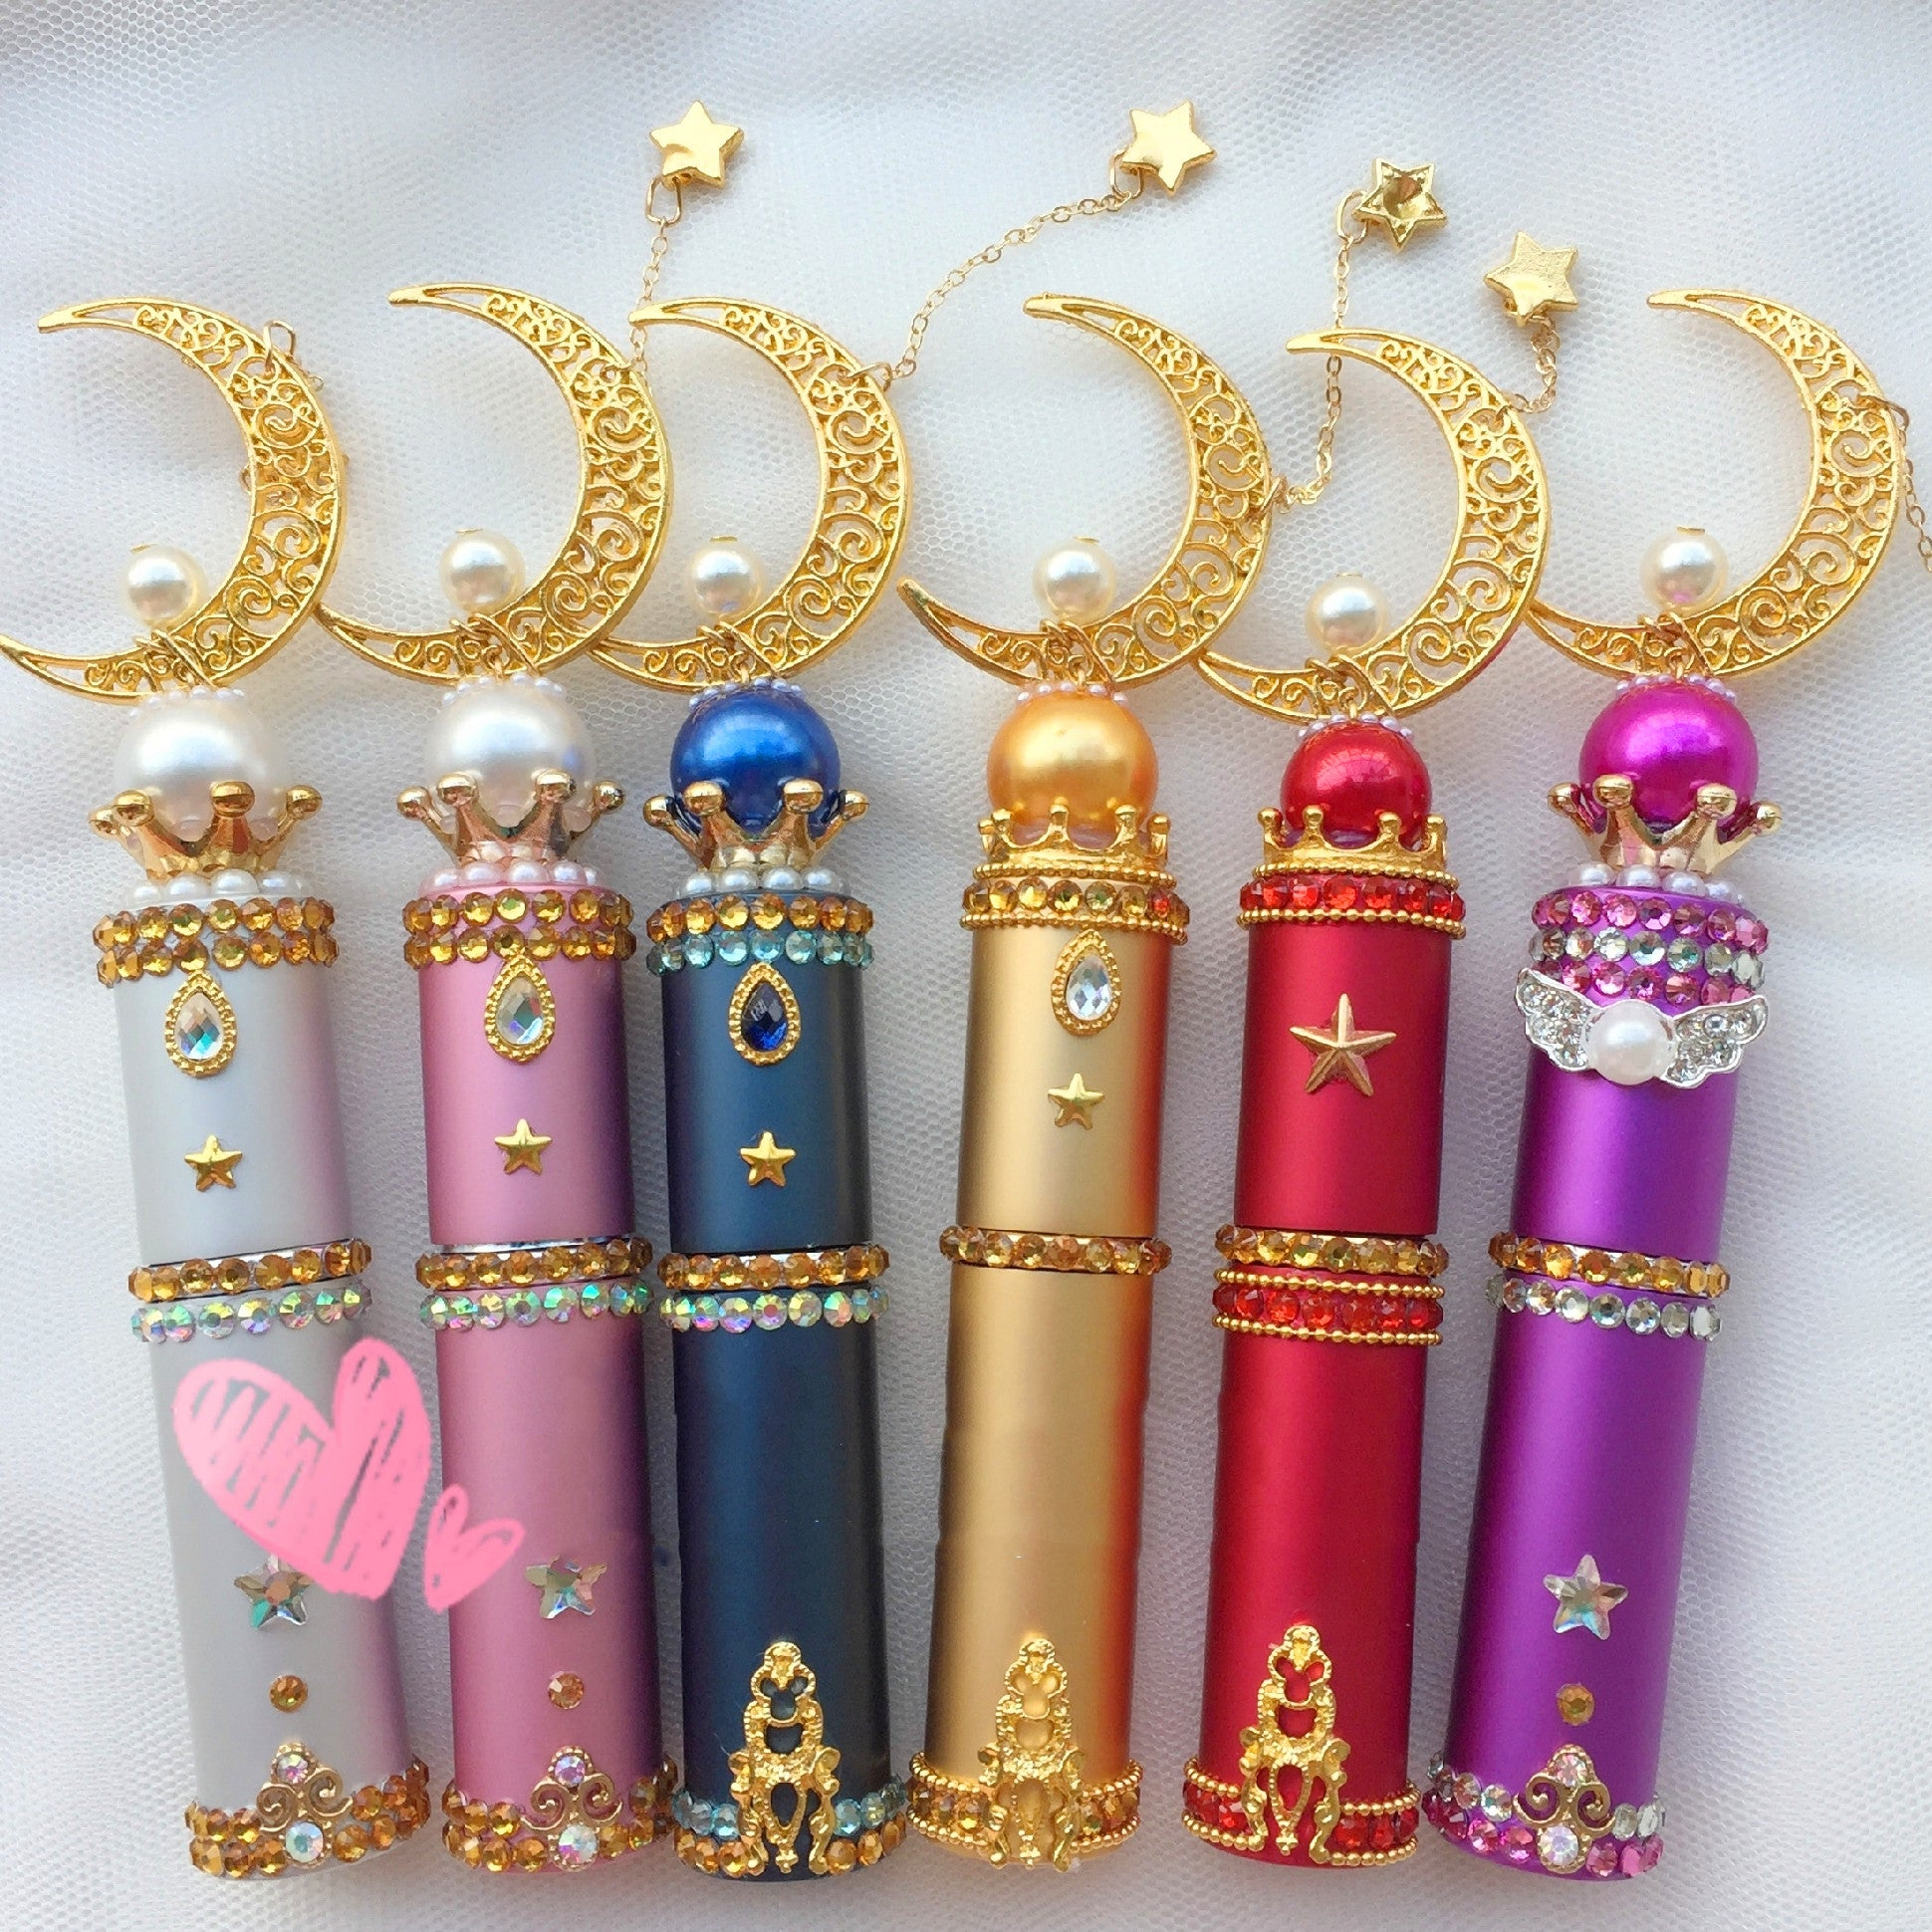 Sailor Moon Perfume Bottle PN0210